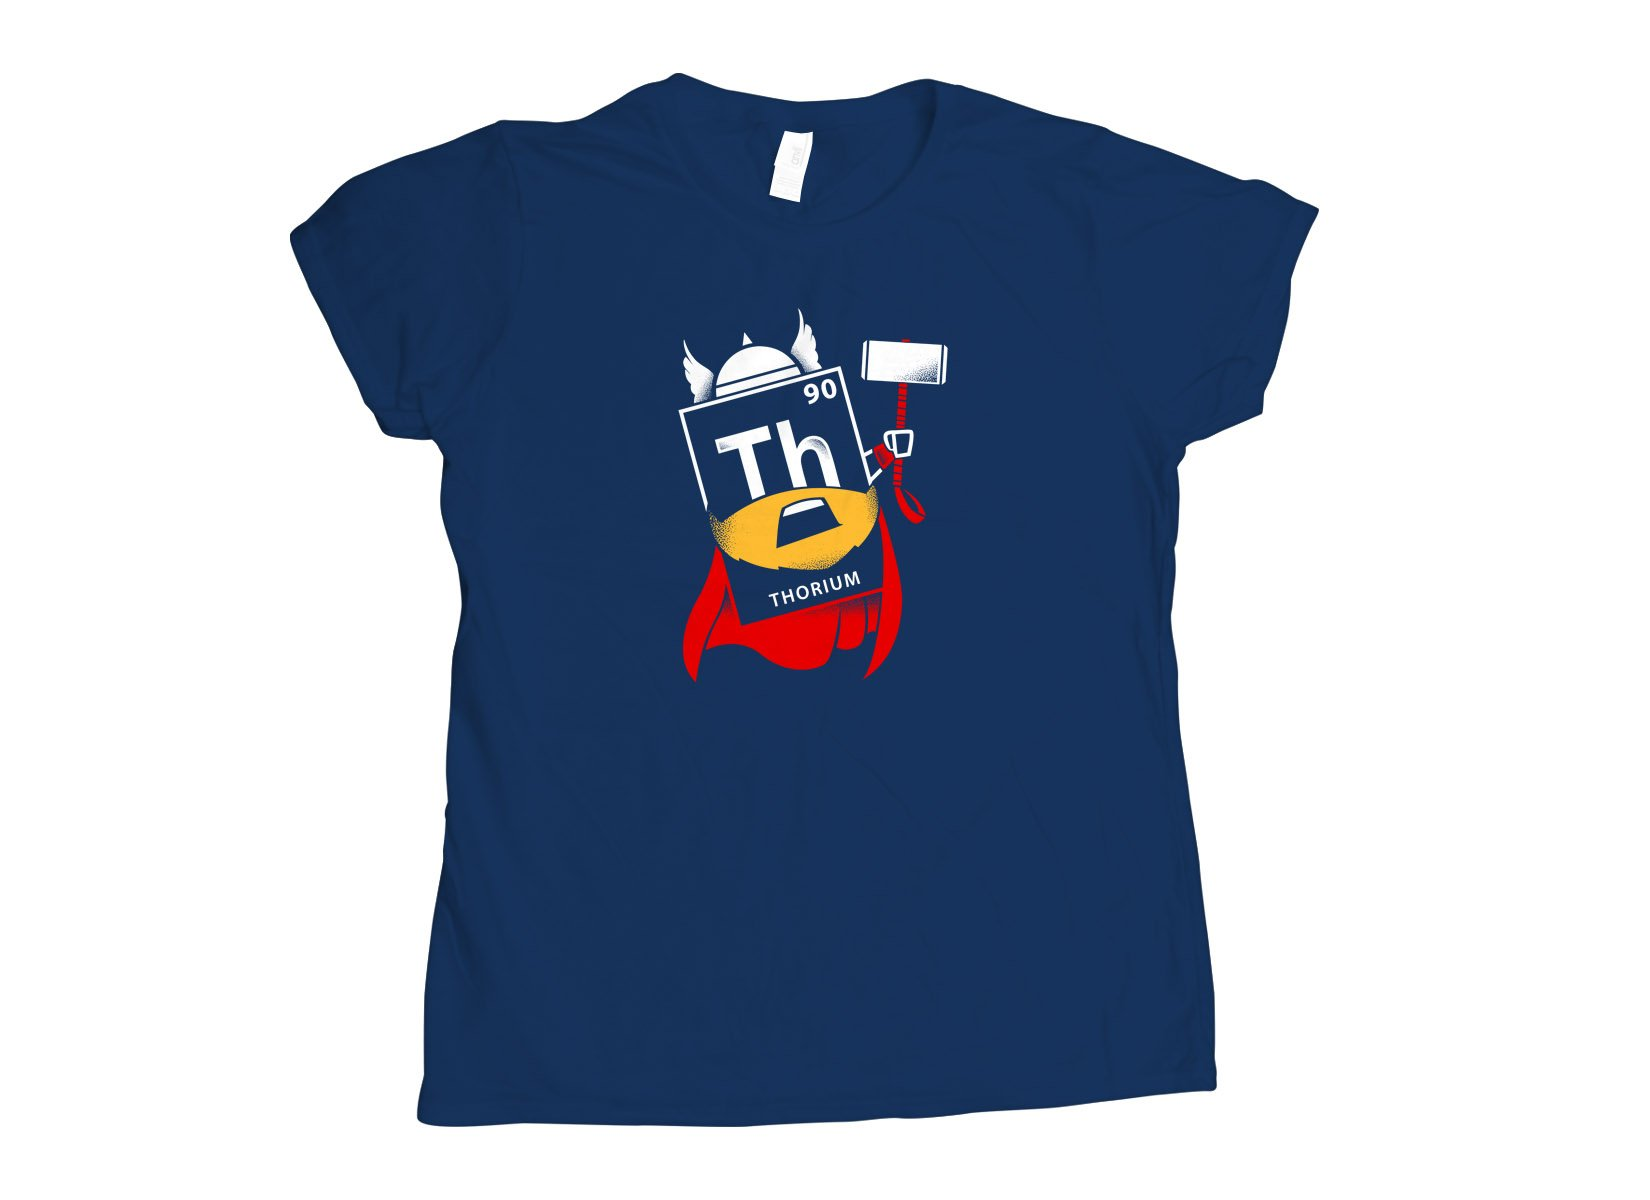 Thorium on Womens T-Shirt